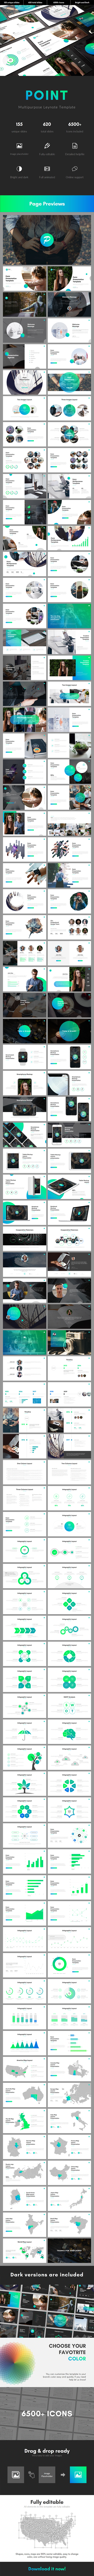 Point Multipurpose Keynote Template - Business Keynote Templates